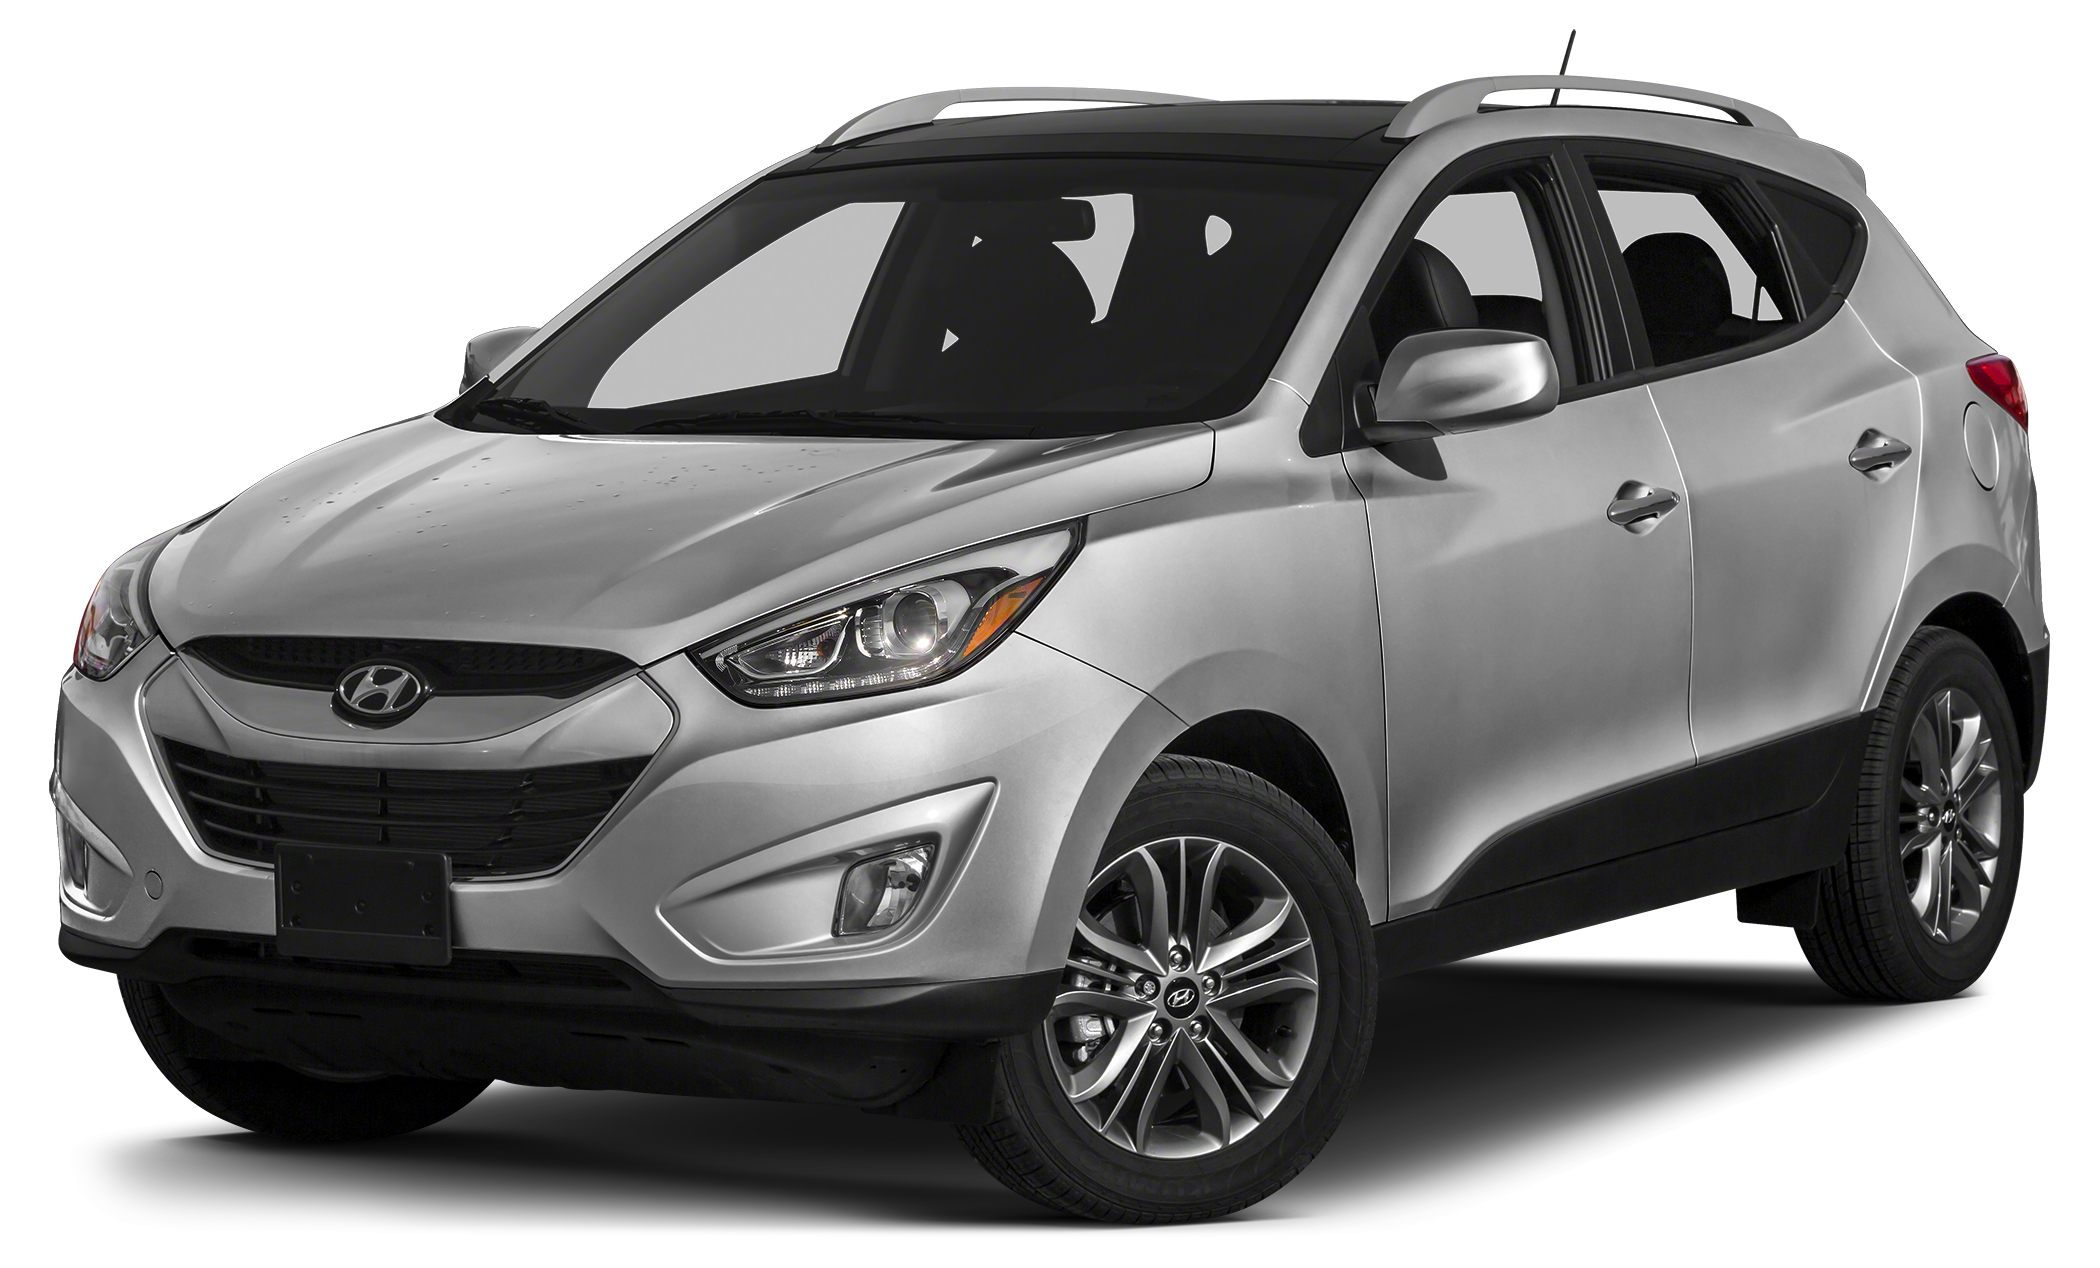 2014 Hyundai Tucson Limited 2014 Hyundai Tucson Limited in Diamond Silver Bluetooth for Phone and